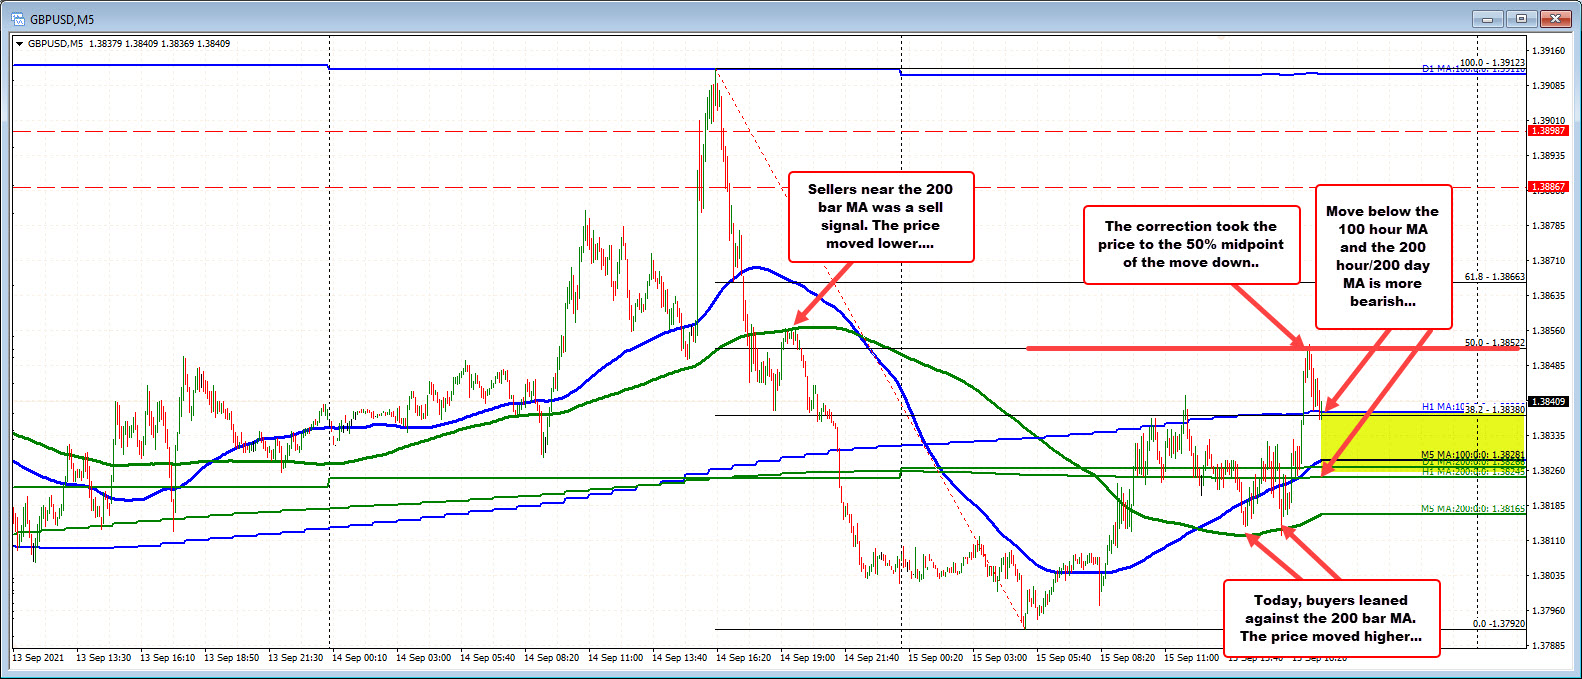 GBPYSD on the 5 minute chart.